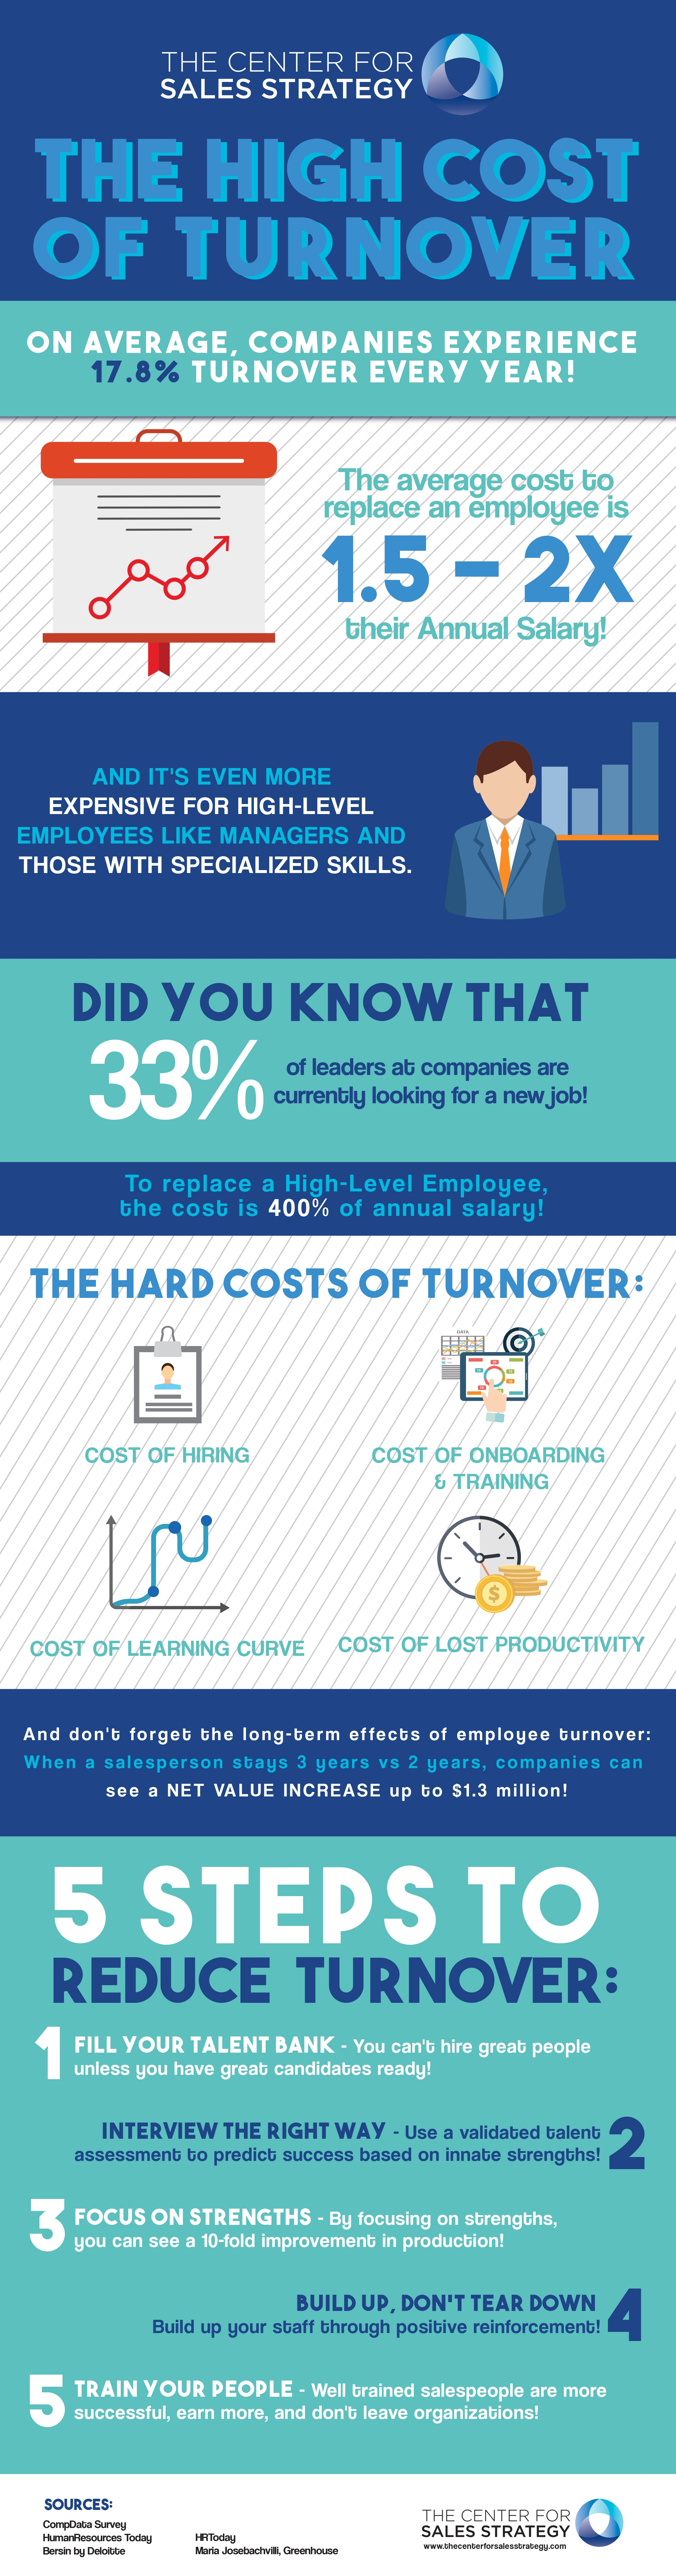 The High Cost Of Turnover_updated.jpg